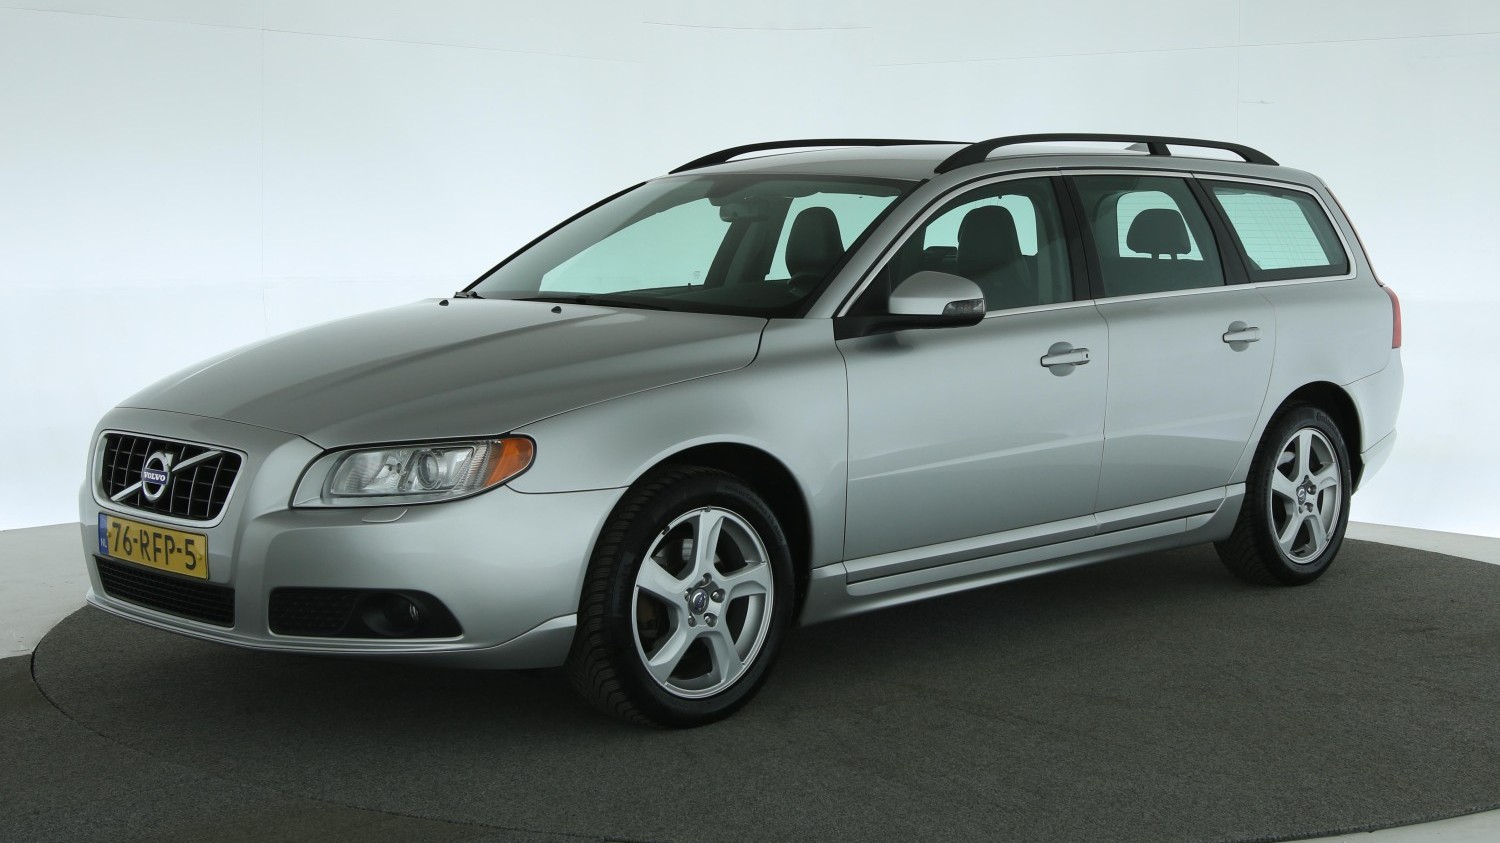 Volvo V70 Station 2011 76-RFP-5 1